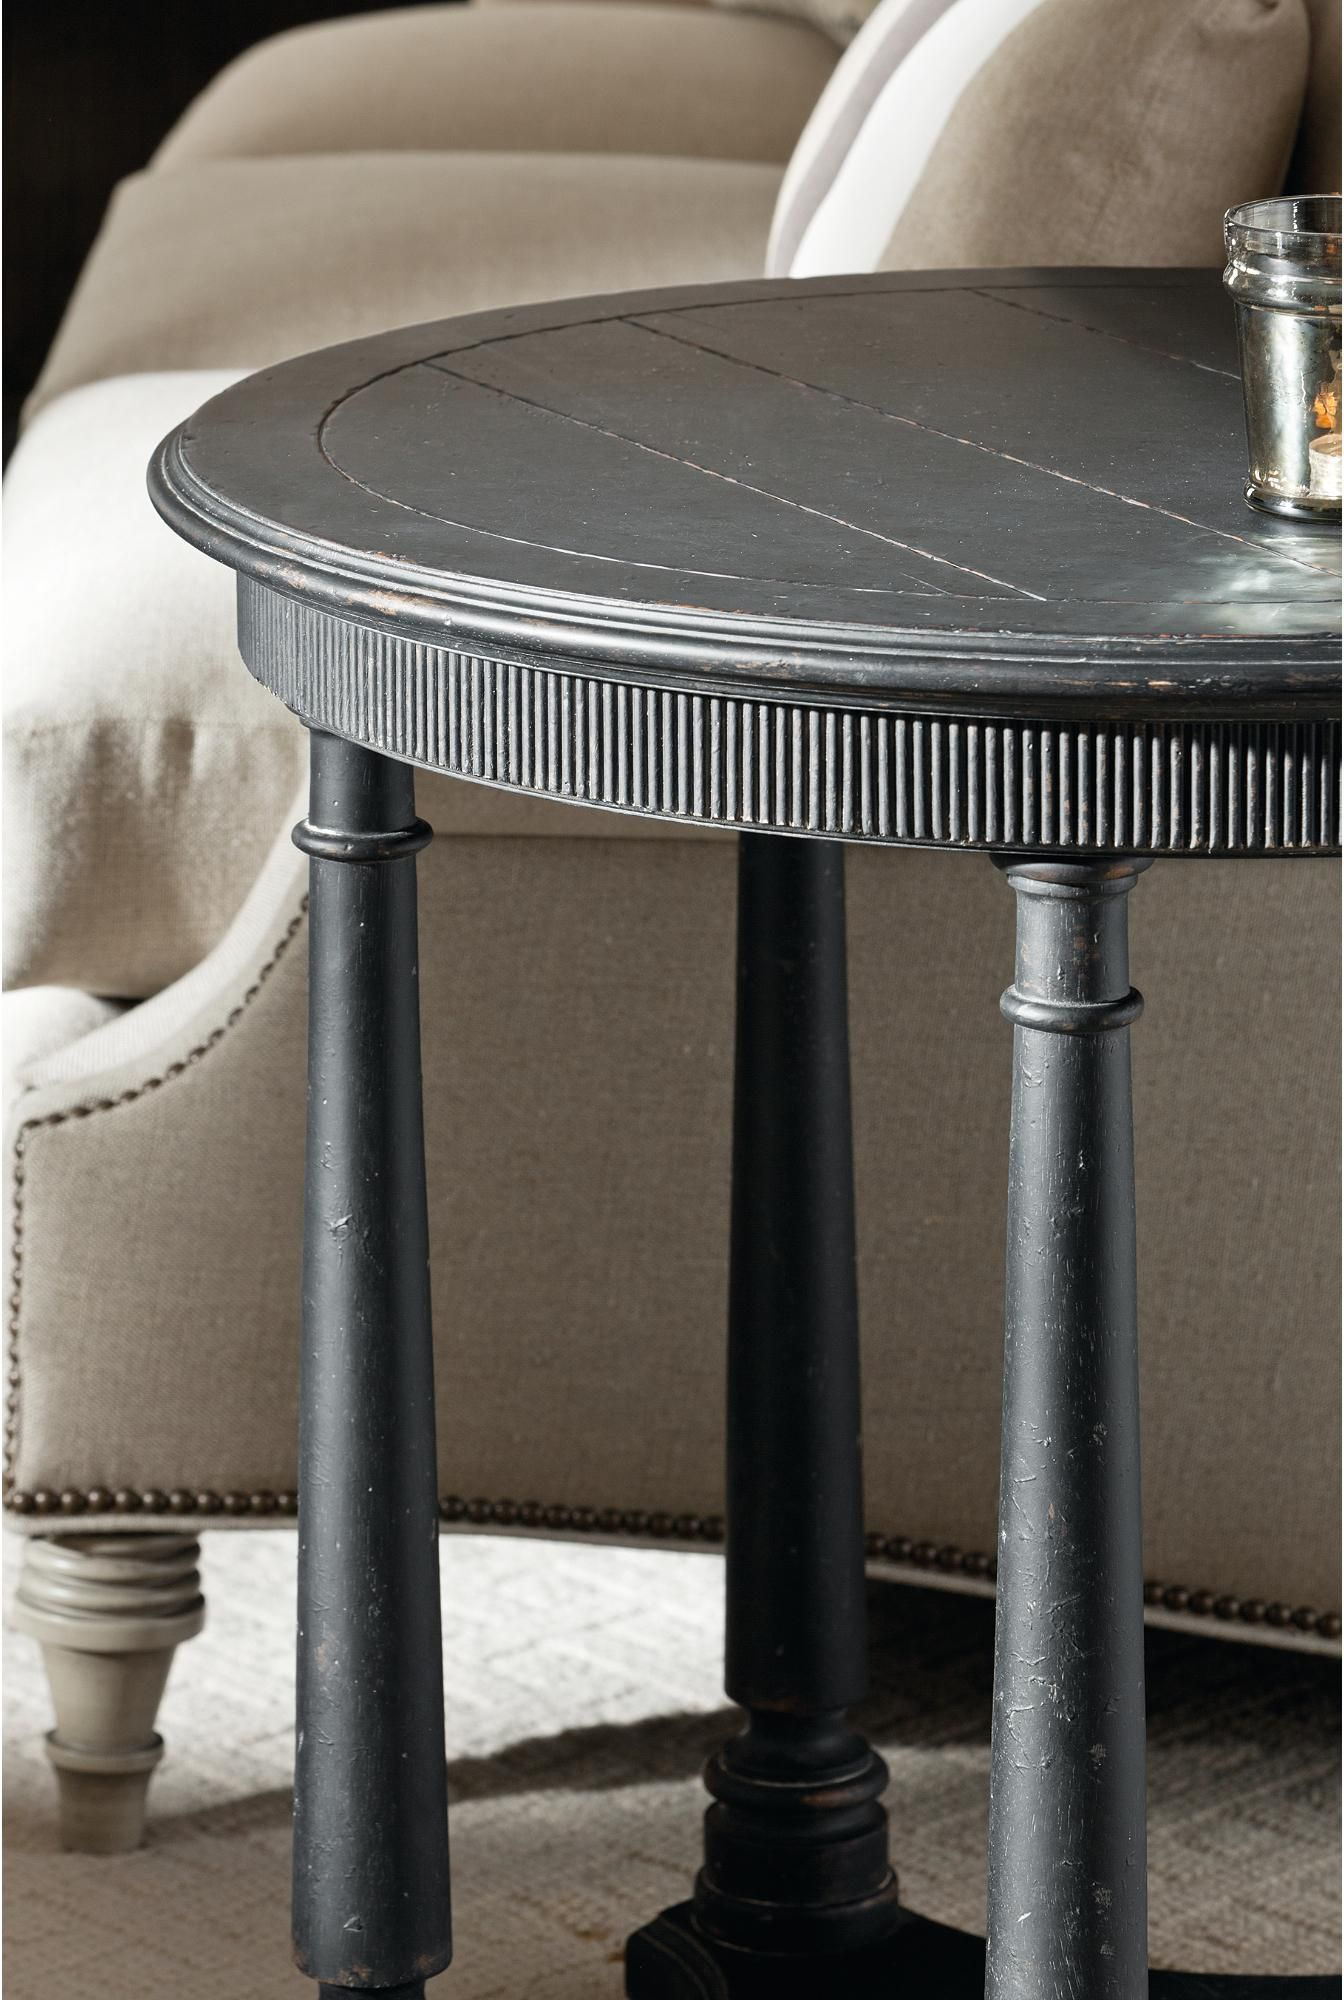 Stanley Furniture Arrondissement Tour Marais Hall Table   Becker Furniture  World   End Table Twin Cities